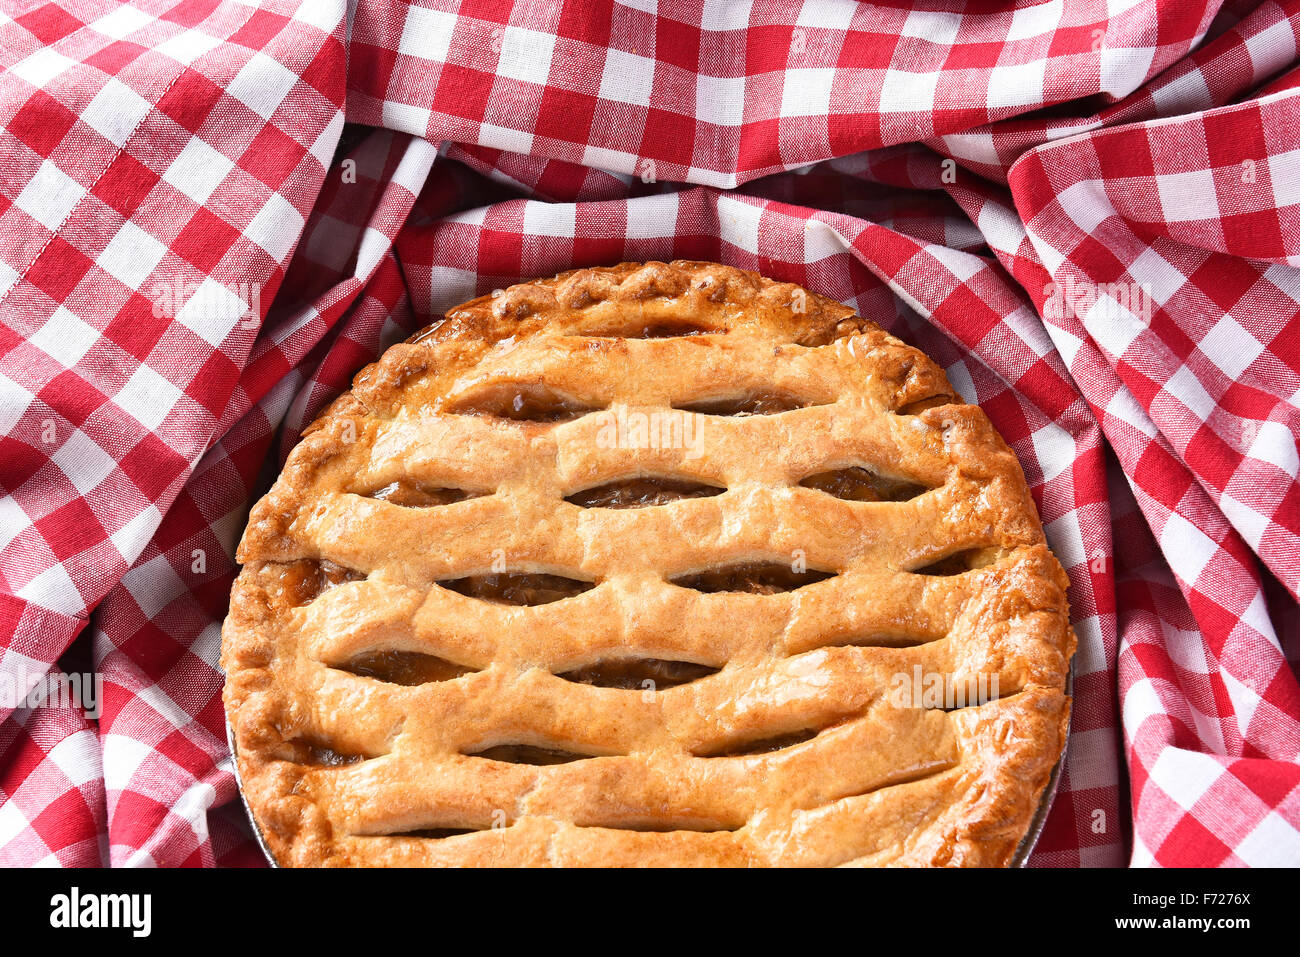 Closeup of a fresh baked Apple Pie surrounded by a red and white checked table cloth. - Stock Image